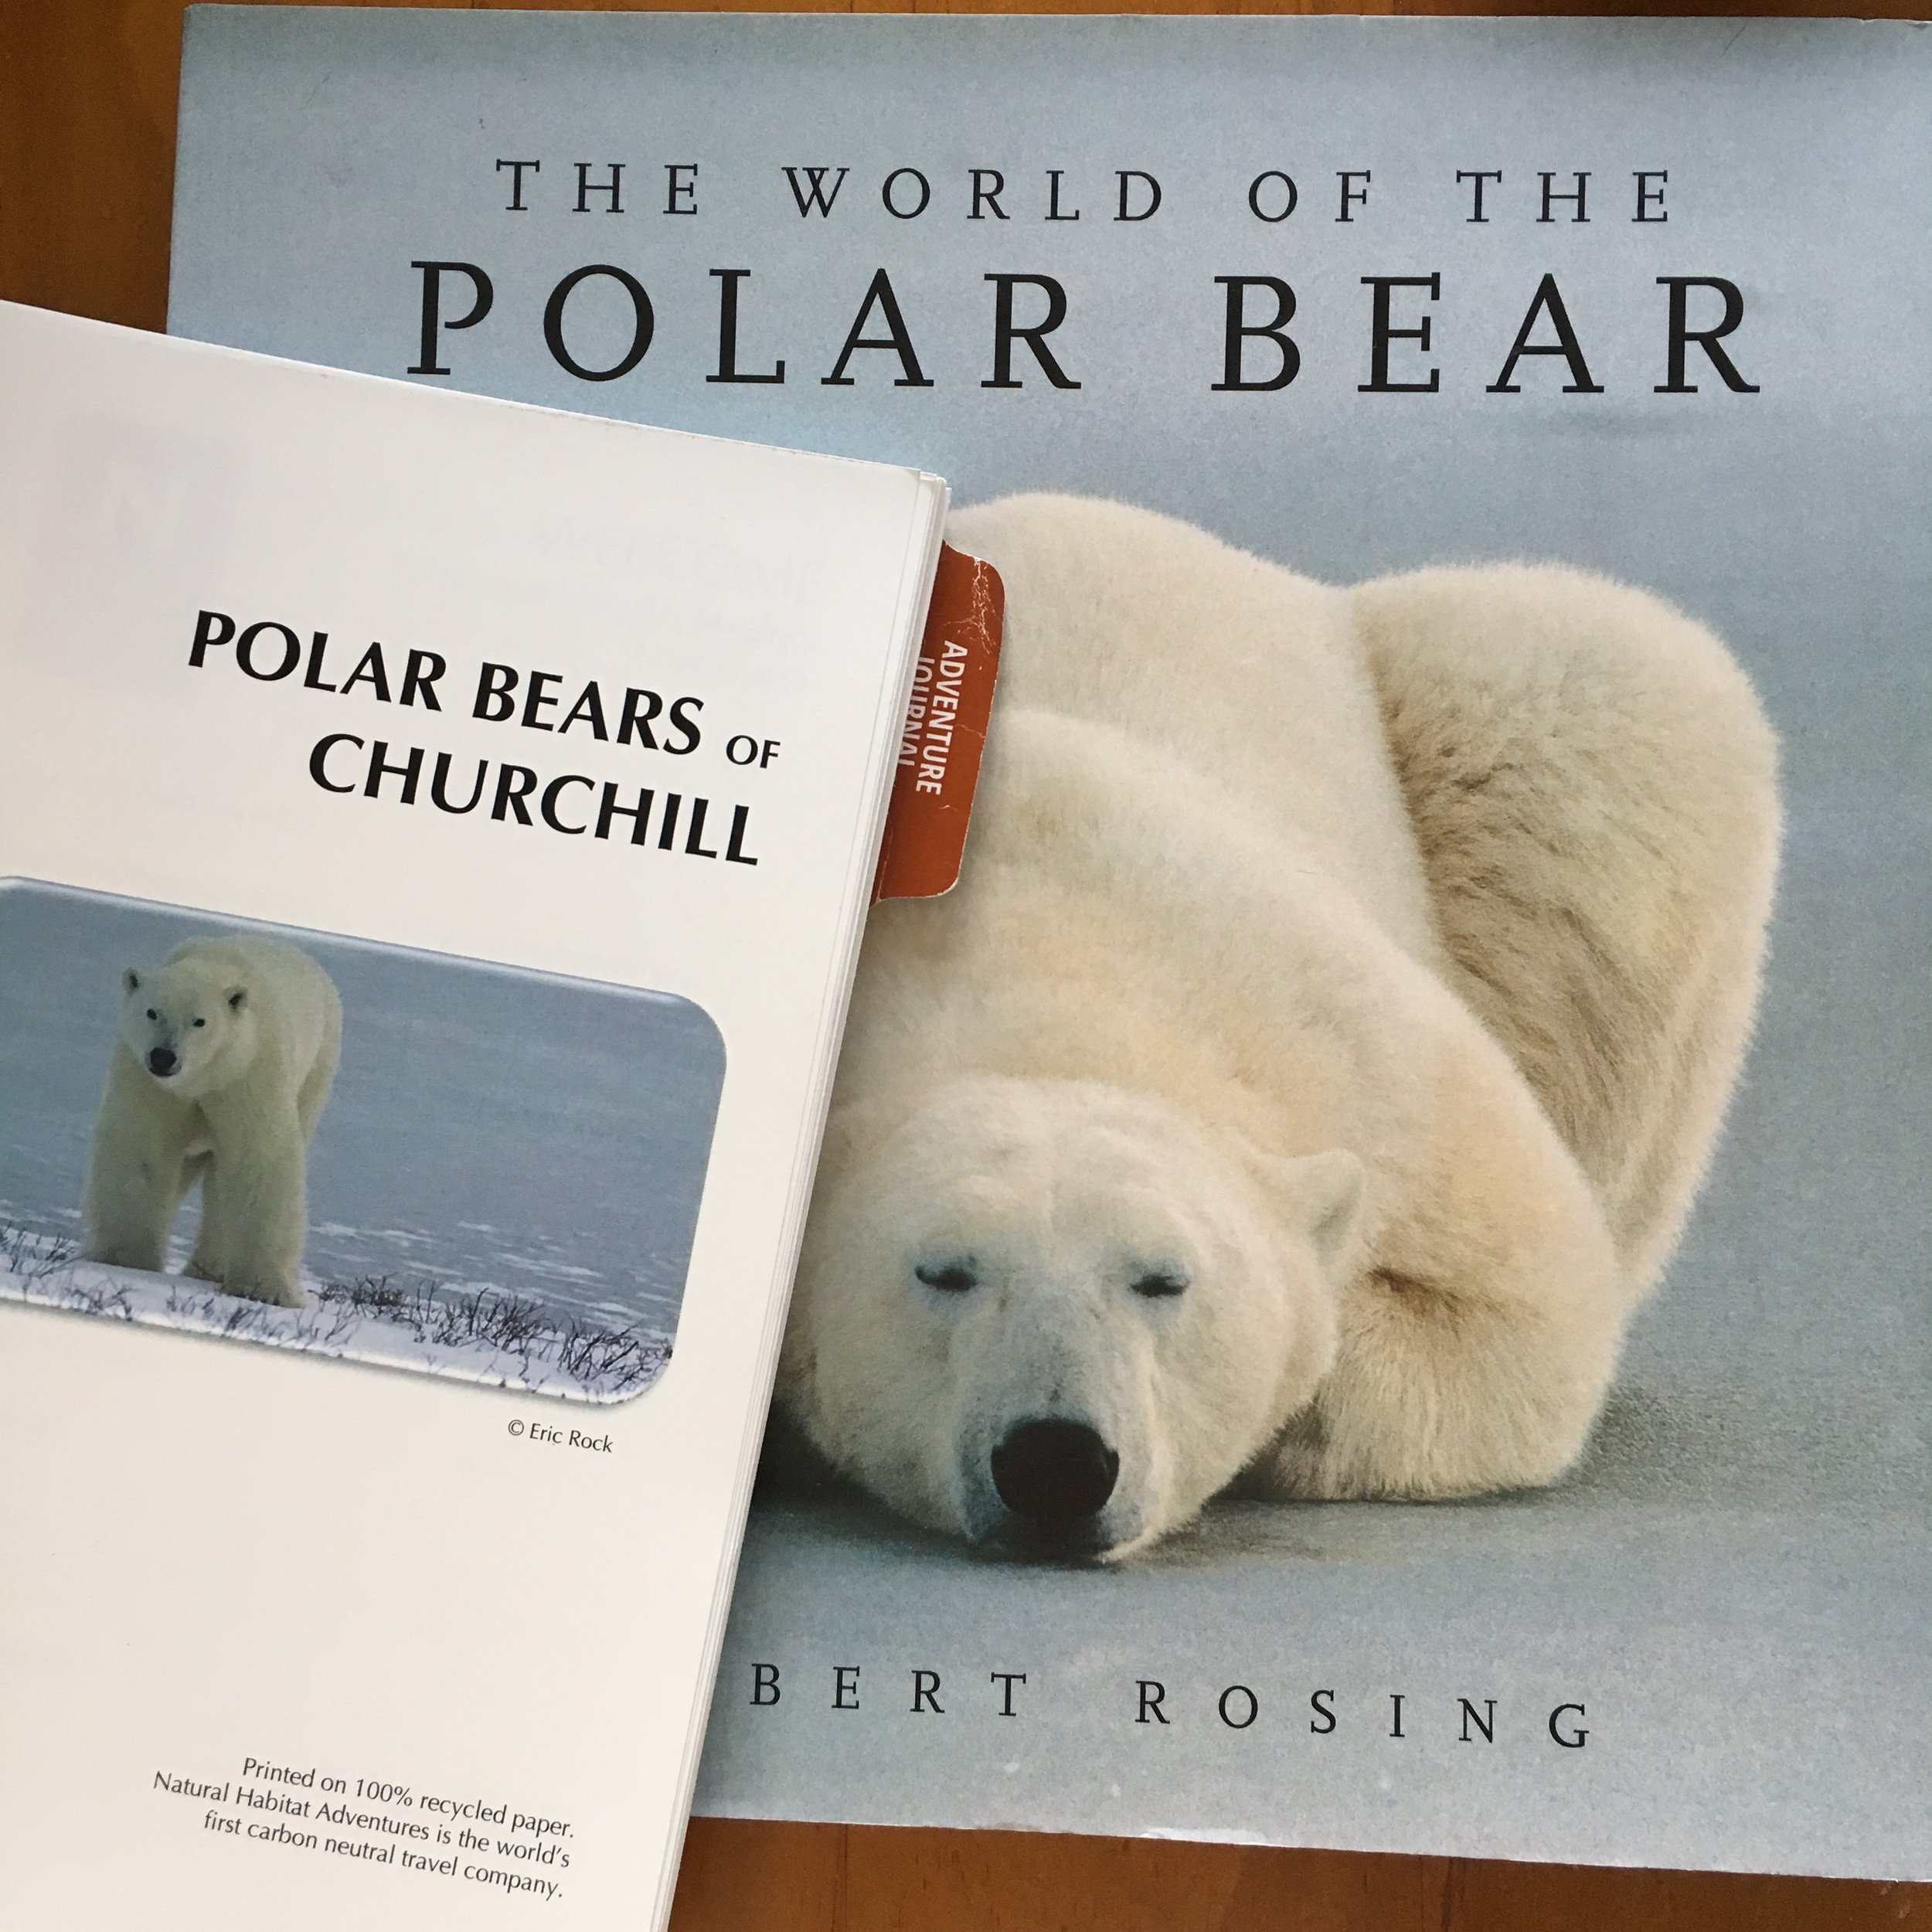 Please follow us on one of our platforms, and share our posts while we explore the Polar Bears of Churchill!